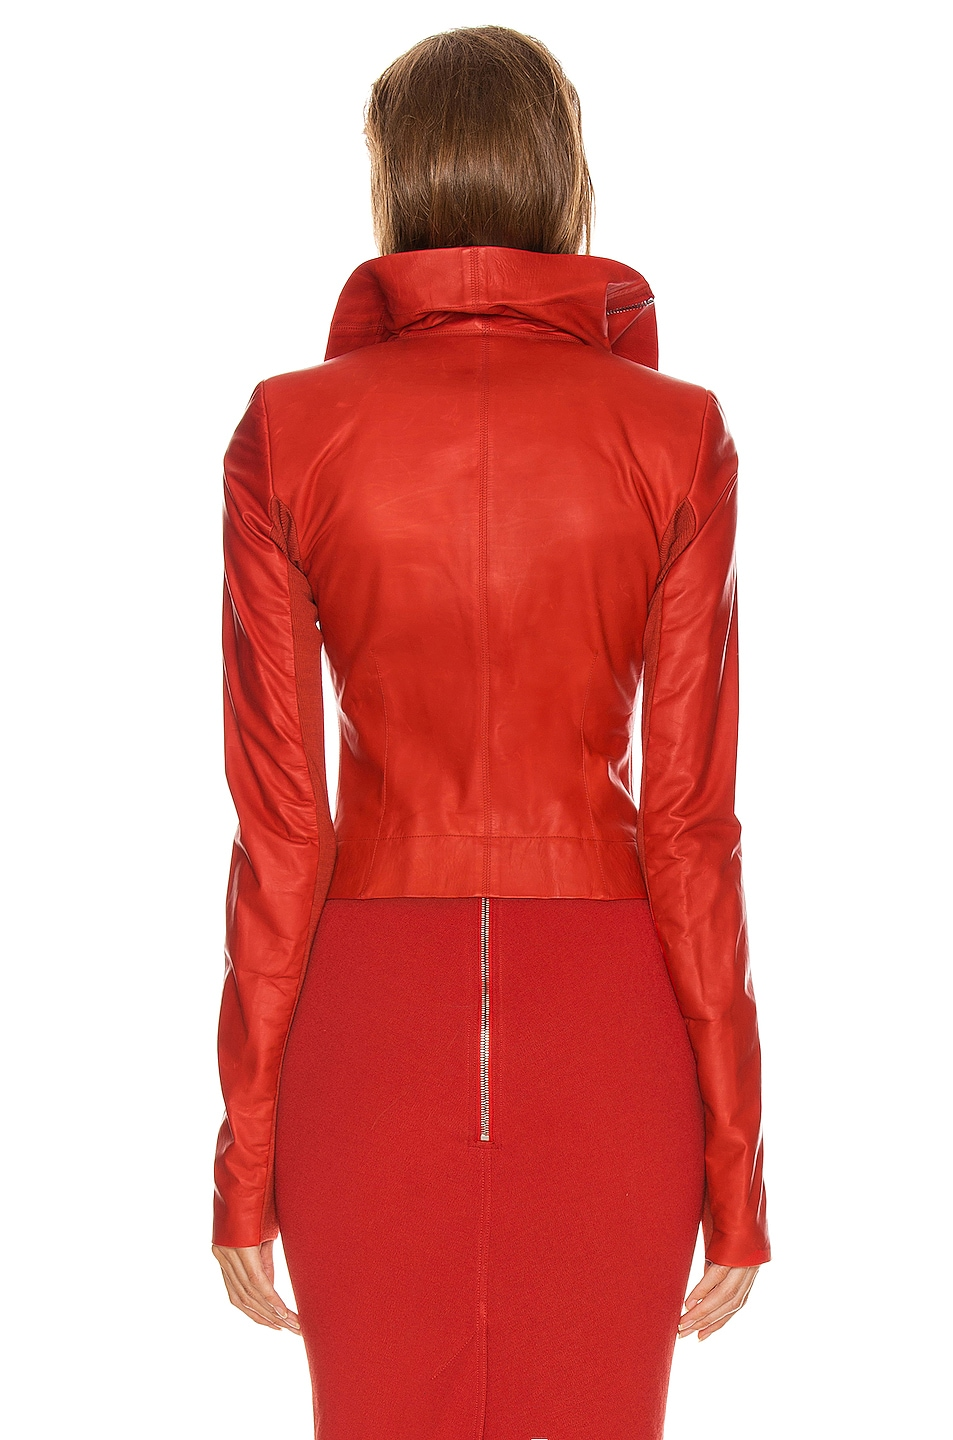 Image 4 of Rick Owens Leather Biker Jacket in Cardinal Red